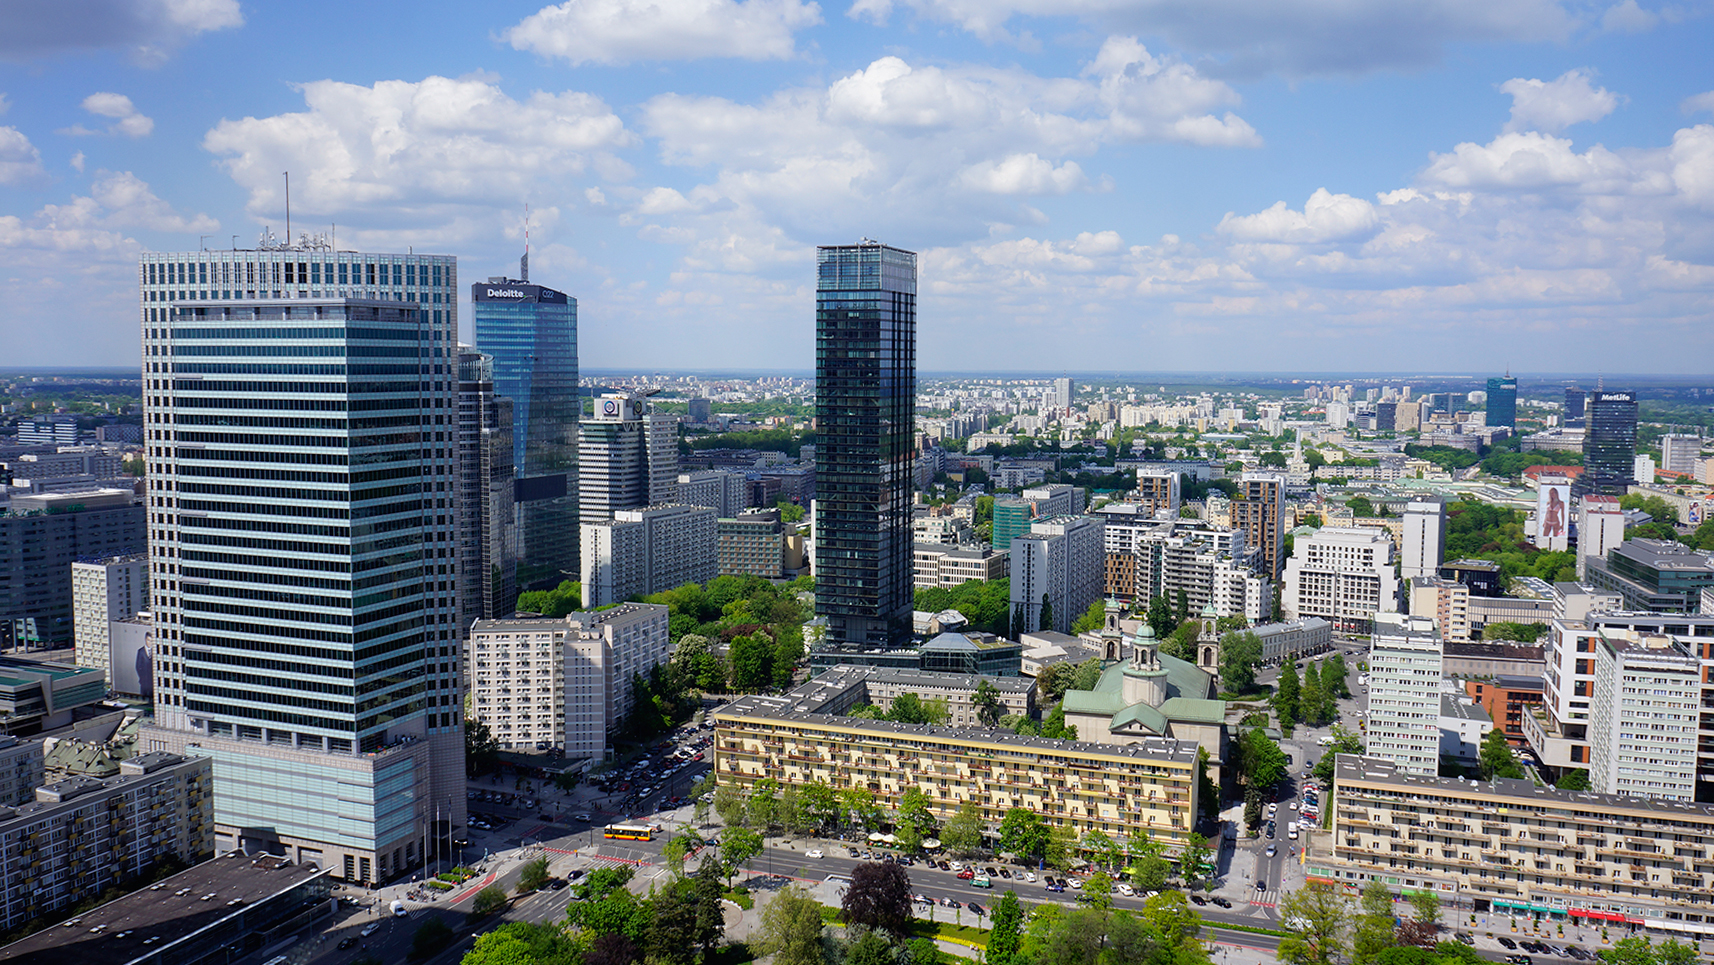 palace-of-culture-and-science-warsaw-poland-2